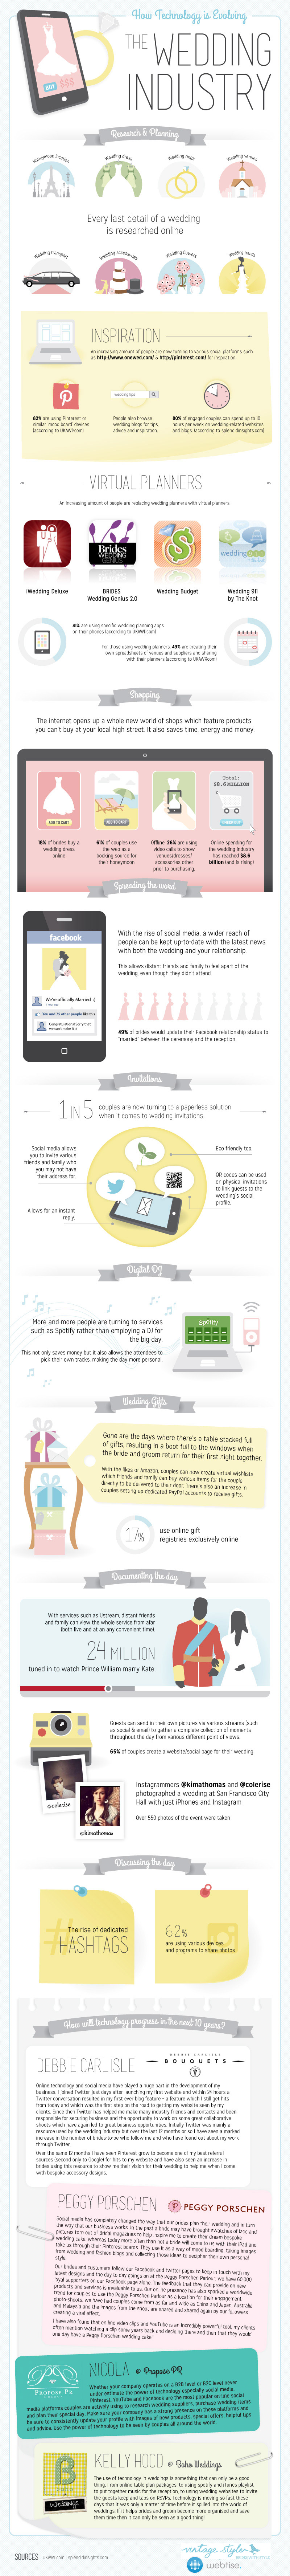 how-technology-is-evolving-the-wedding-industry_518b958d5c214